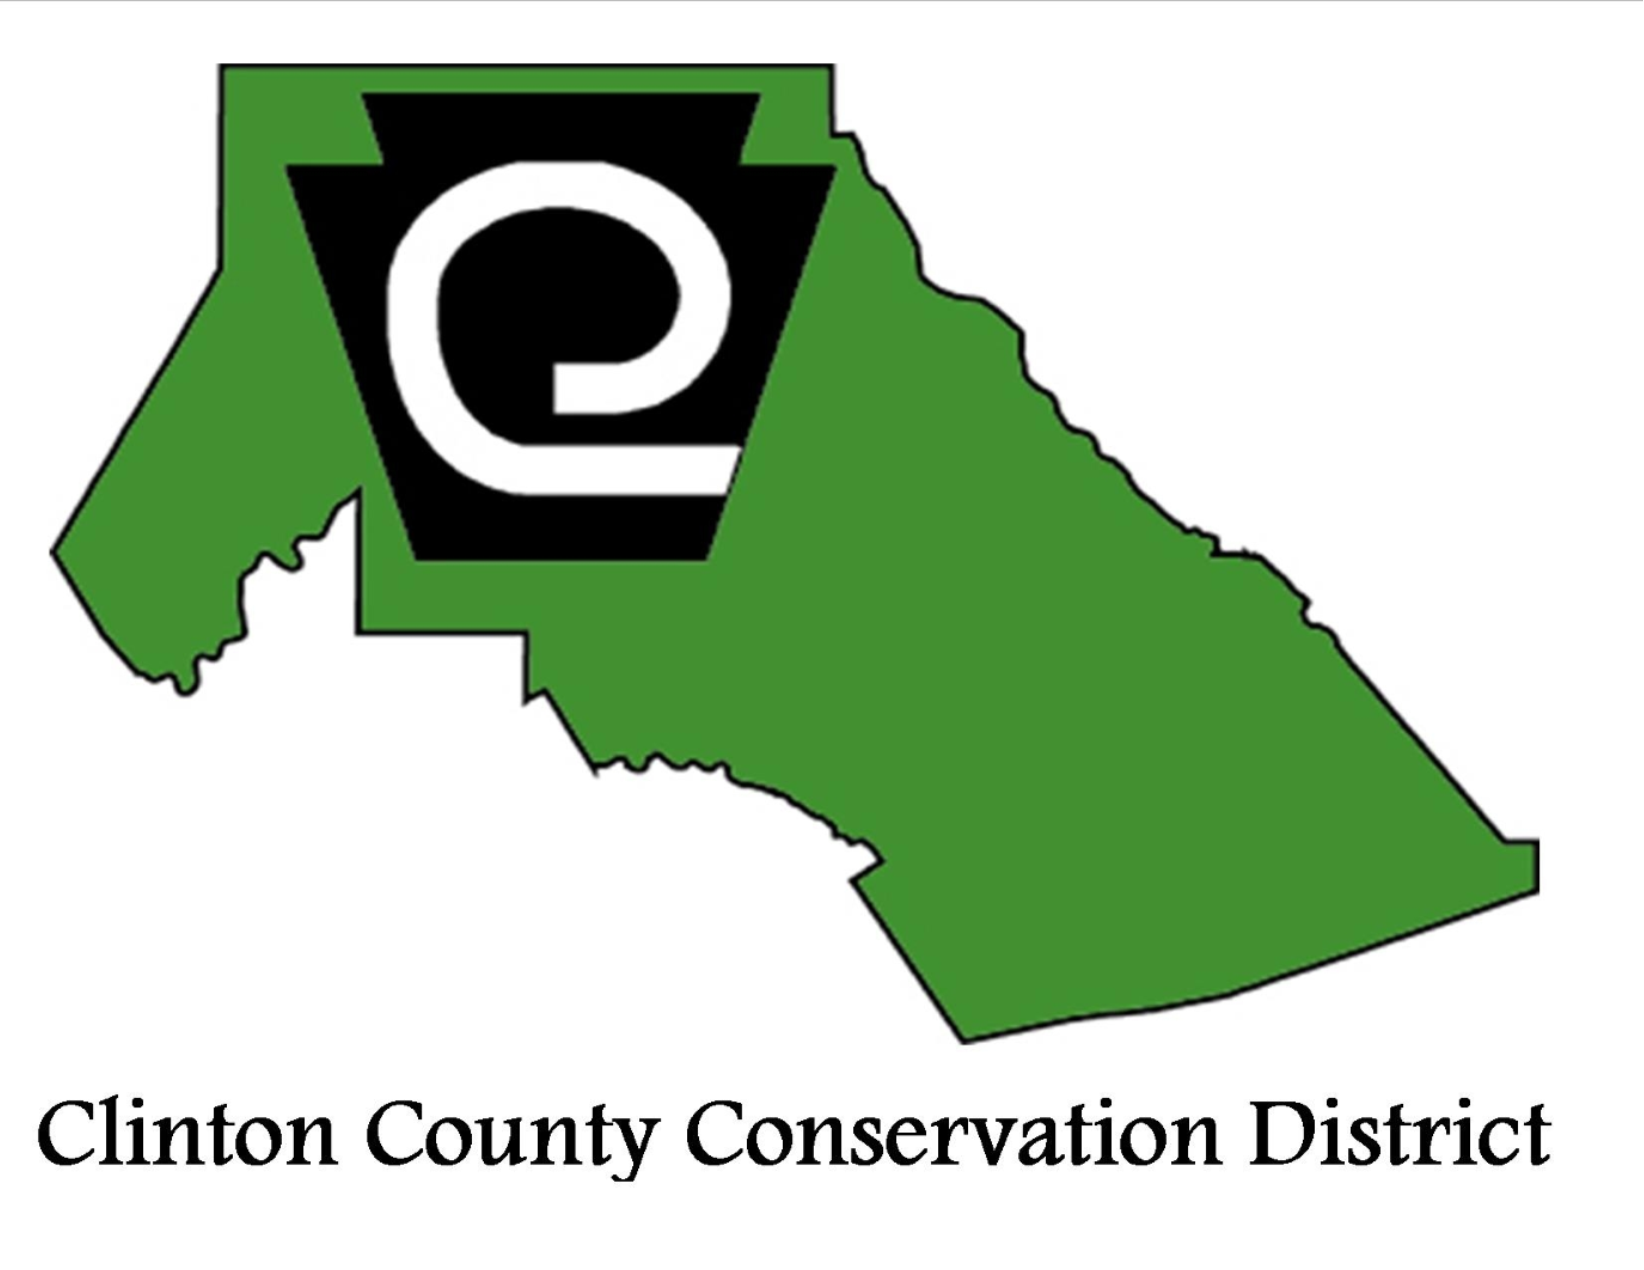 Clinton COunty COnservation District